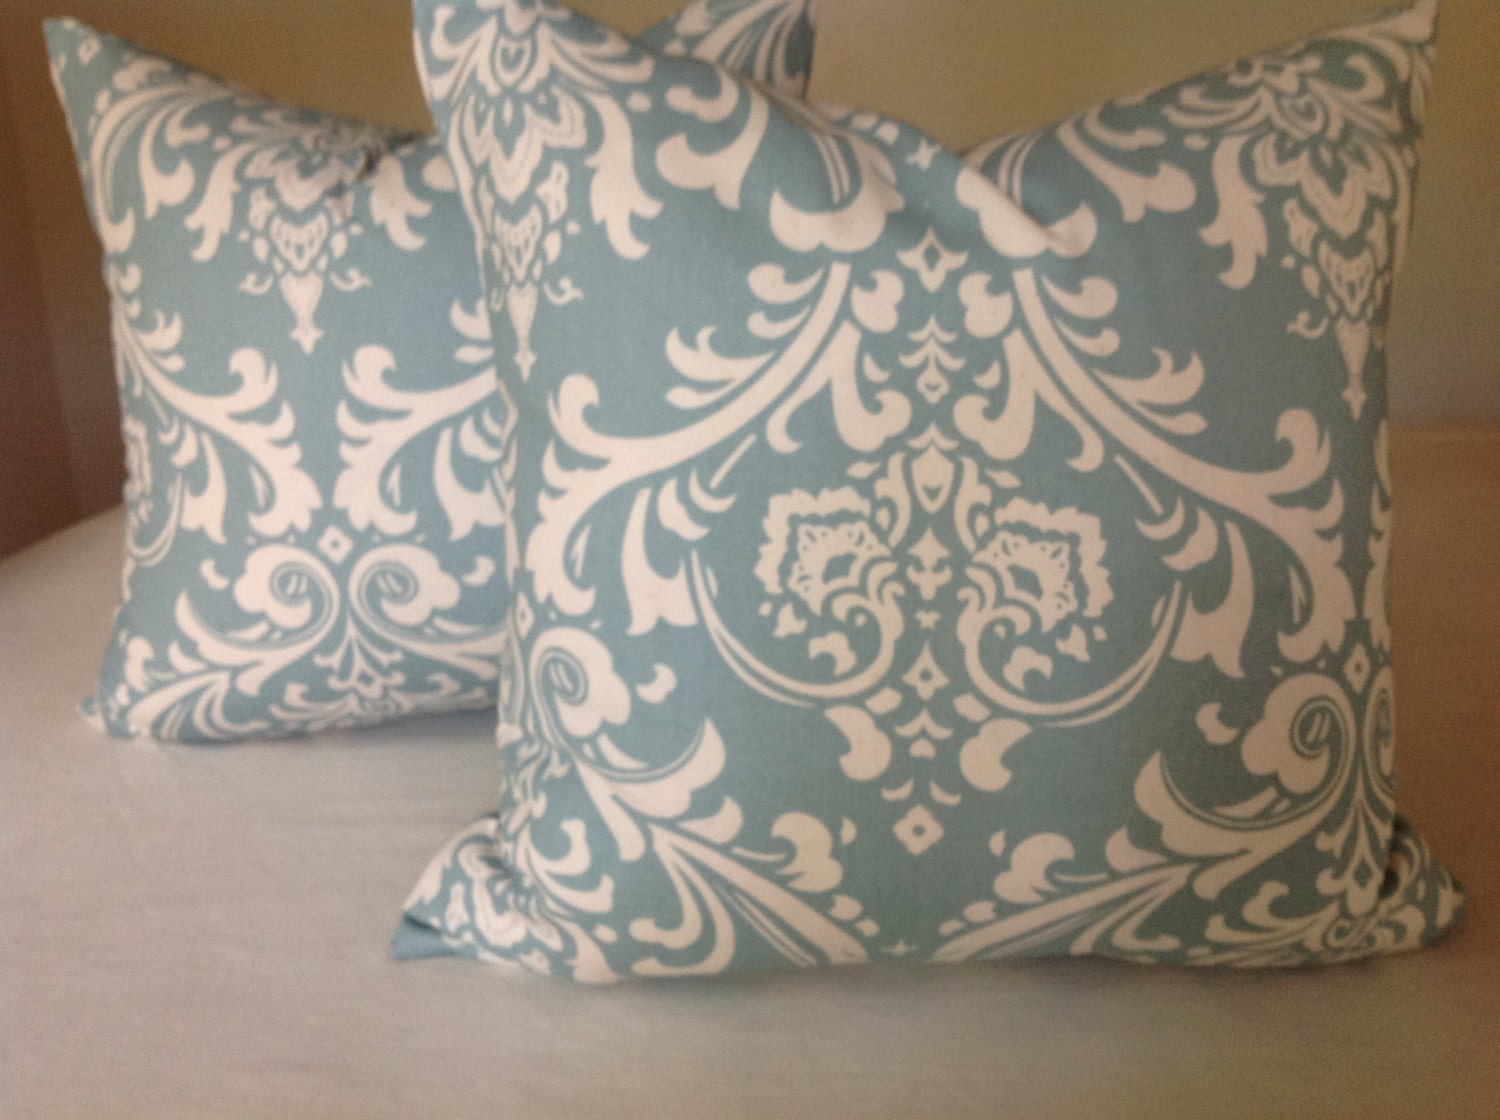 Items similar to Pillows, Throw Pillows, Large floor pillows, Decorative Throw Pillow covers ...